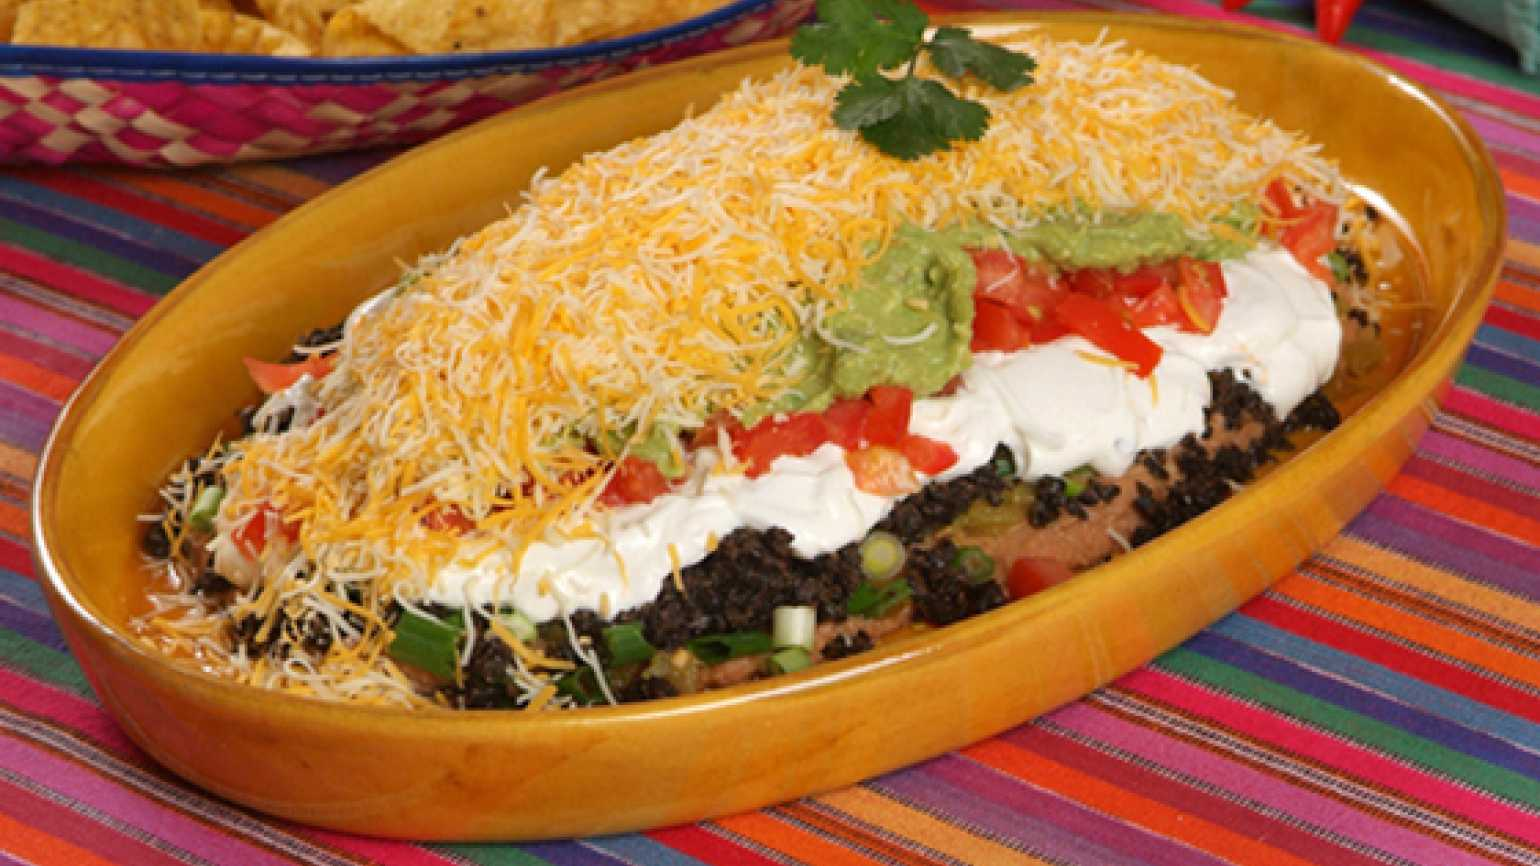 Carla's 'walking taco' dip